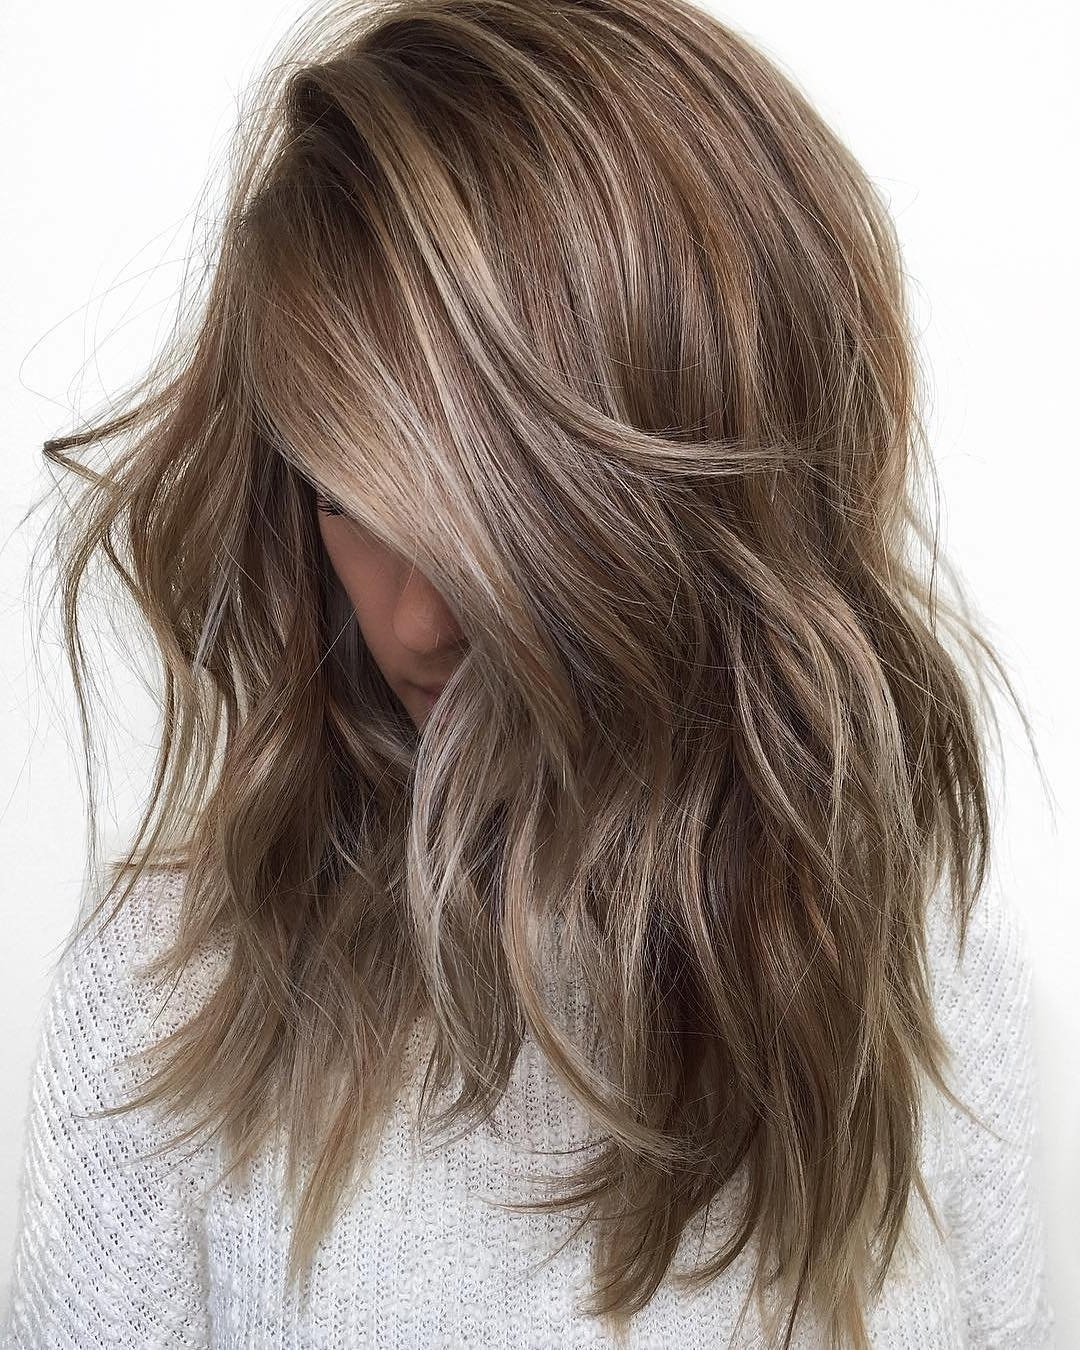 Best And Newest Textured Medium Length Look Blonde Hairstyles Pertaining To 10 Balayage Ombre Hair Styles For Shoulder Length Hair, Women (View 7 of 20)